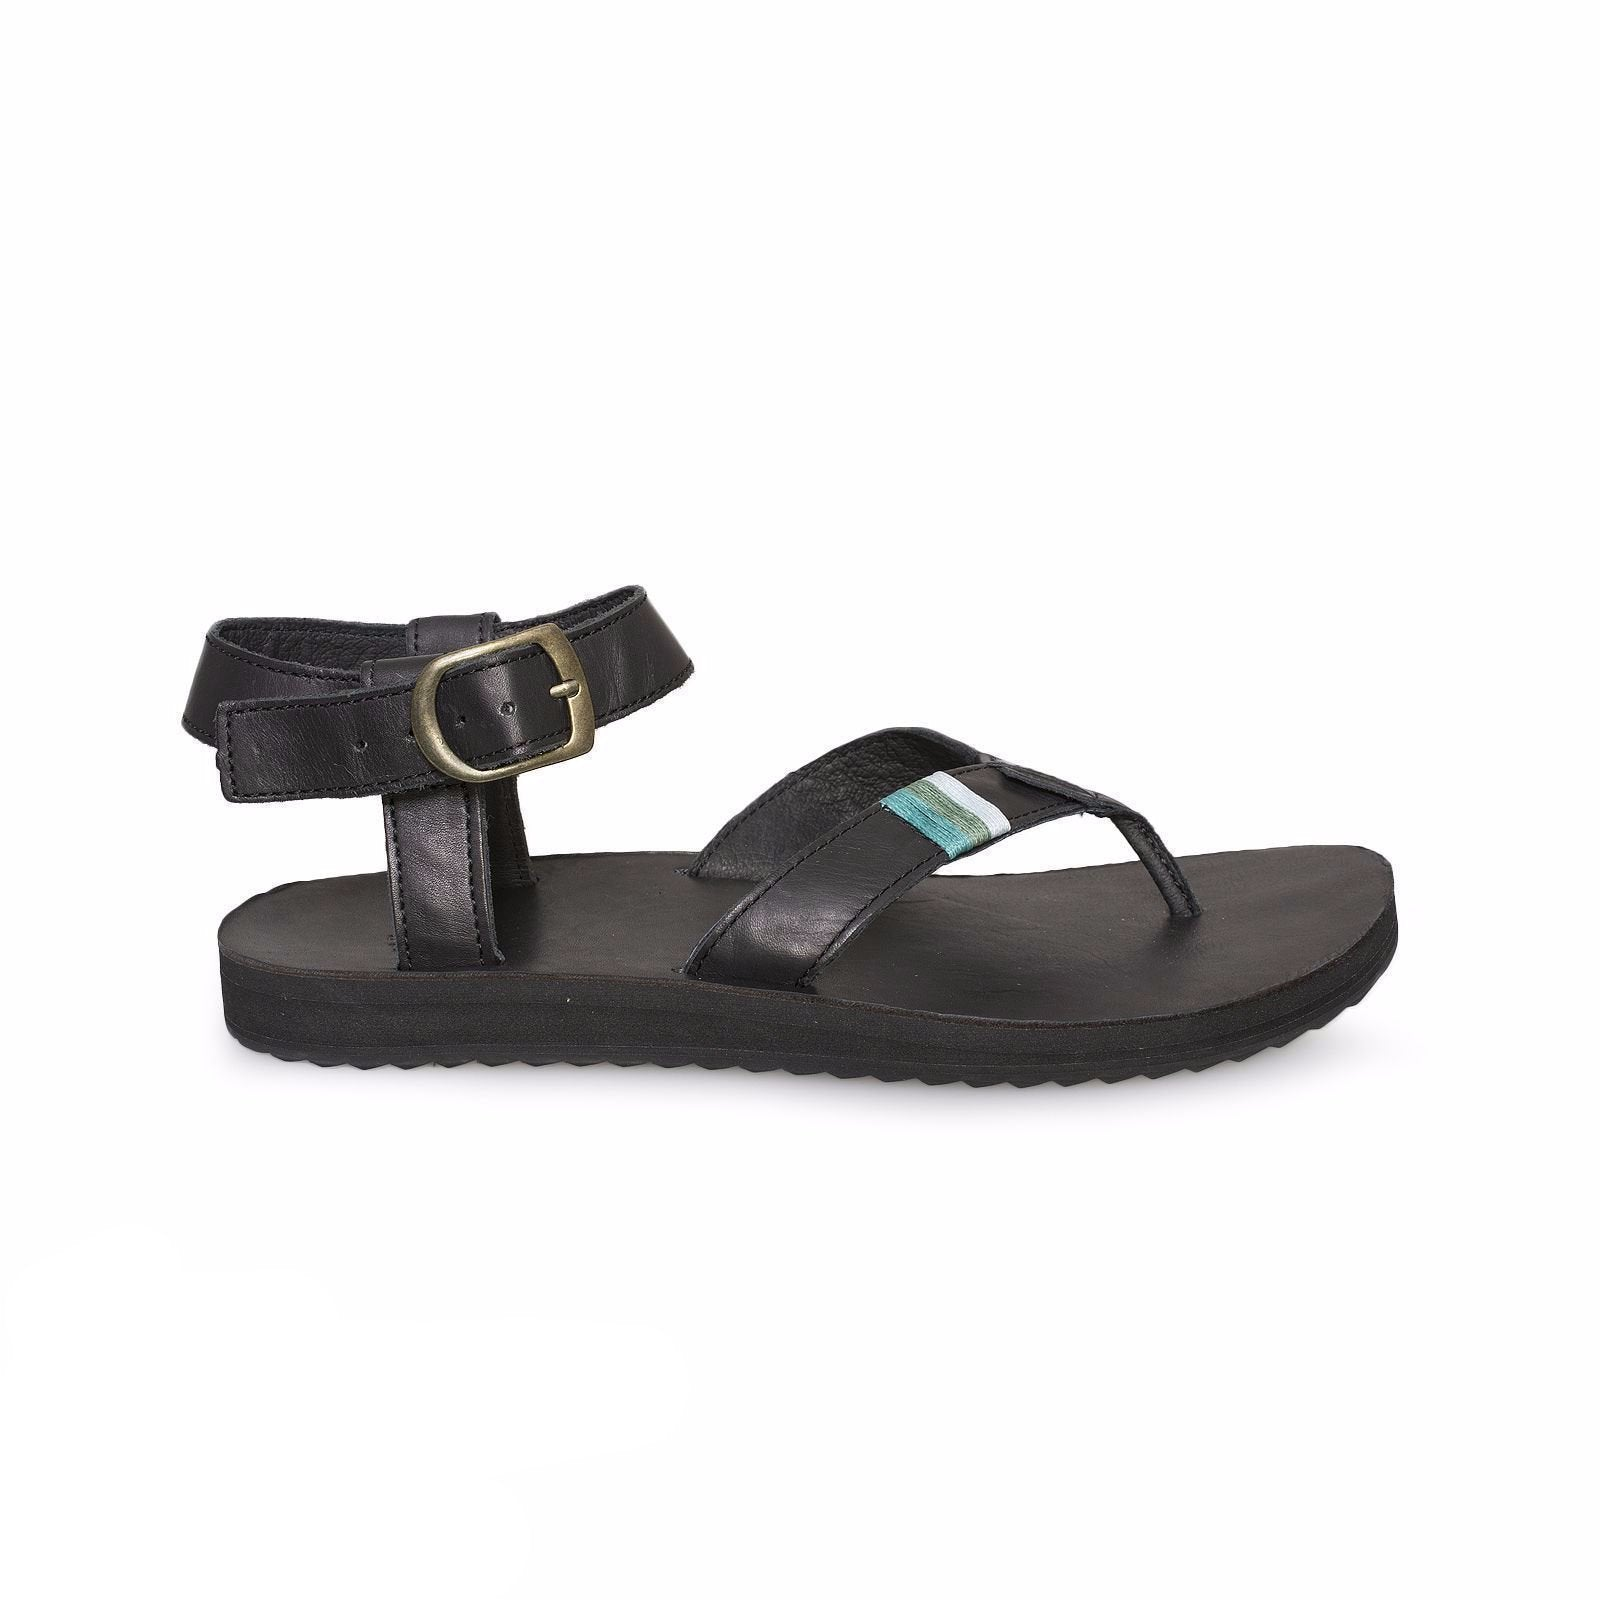 29b59167eef9 Teva Original Crafted Leather Black Sandal - MyCozyBoots